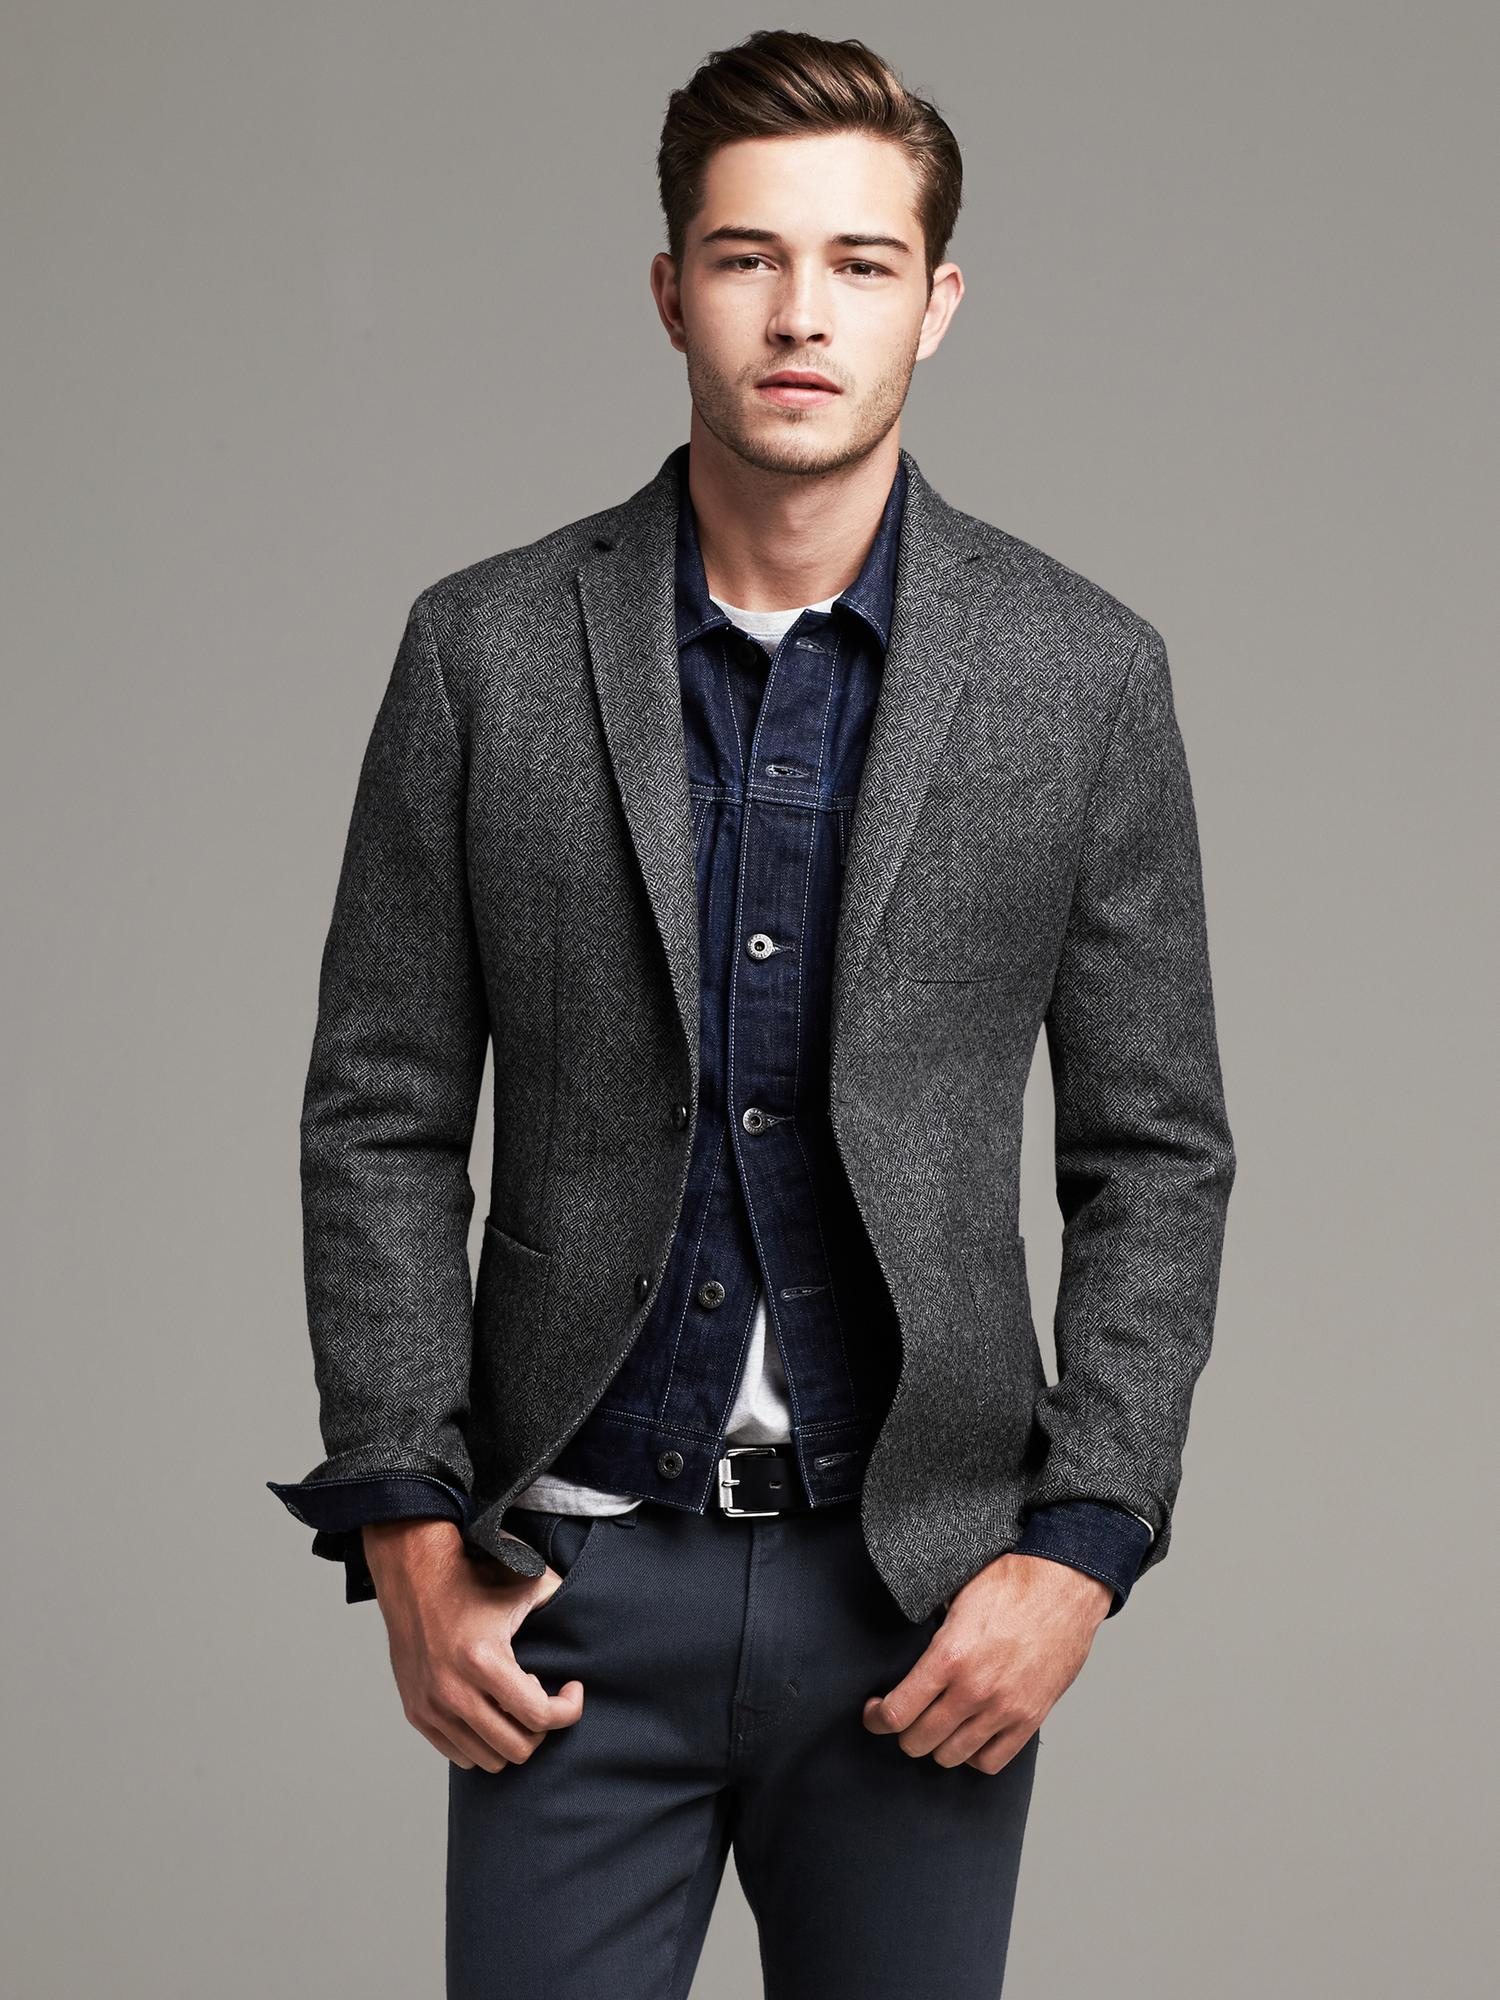 Grey Tweed Blazer Photo Album - Reikian